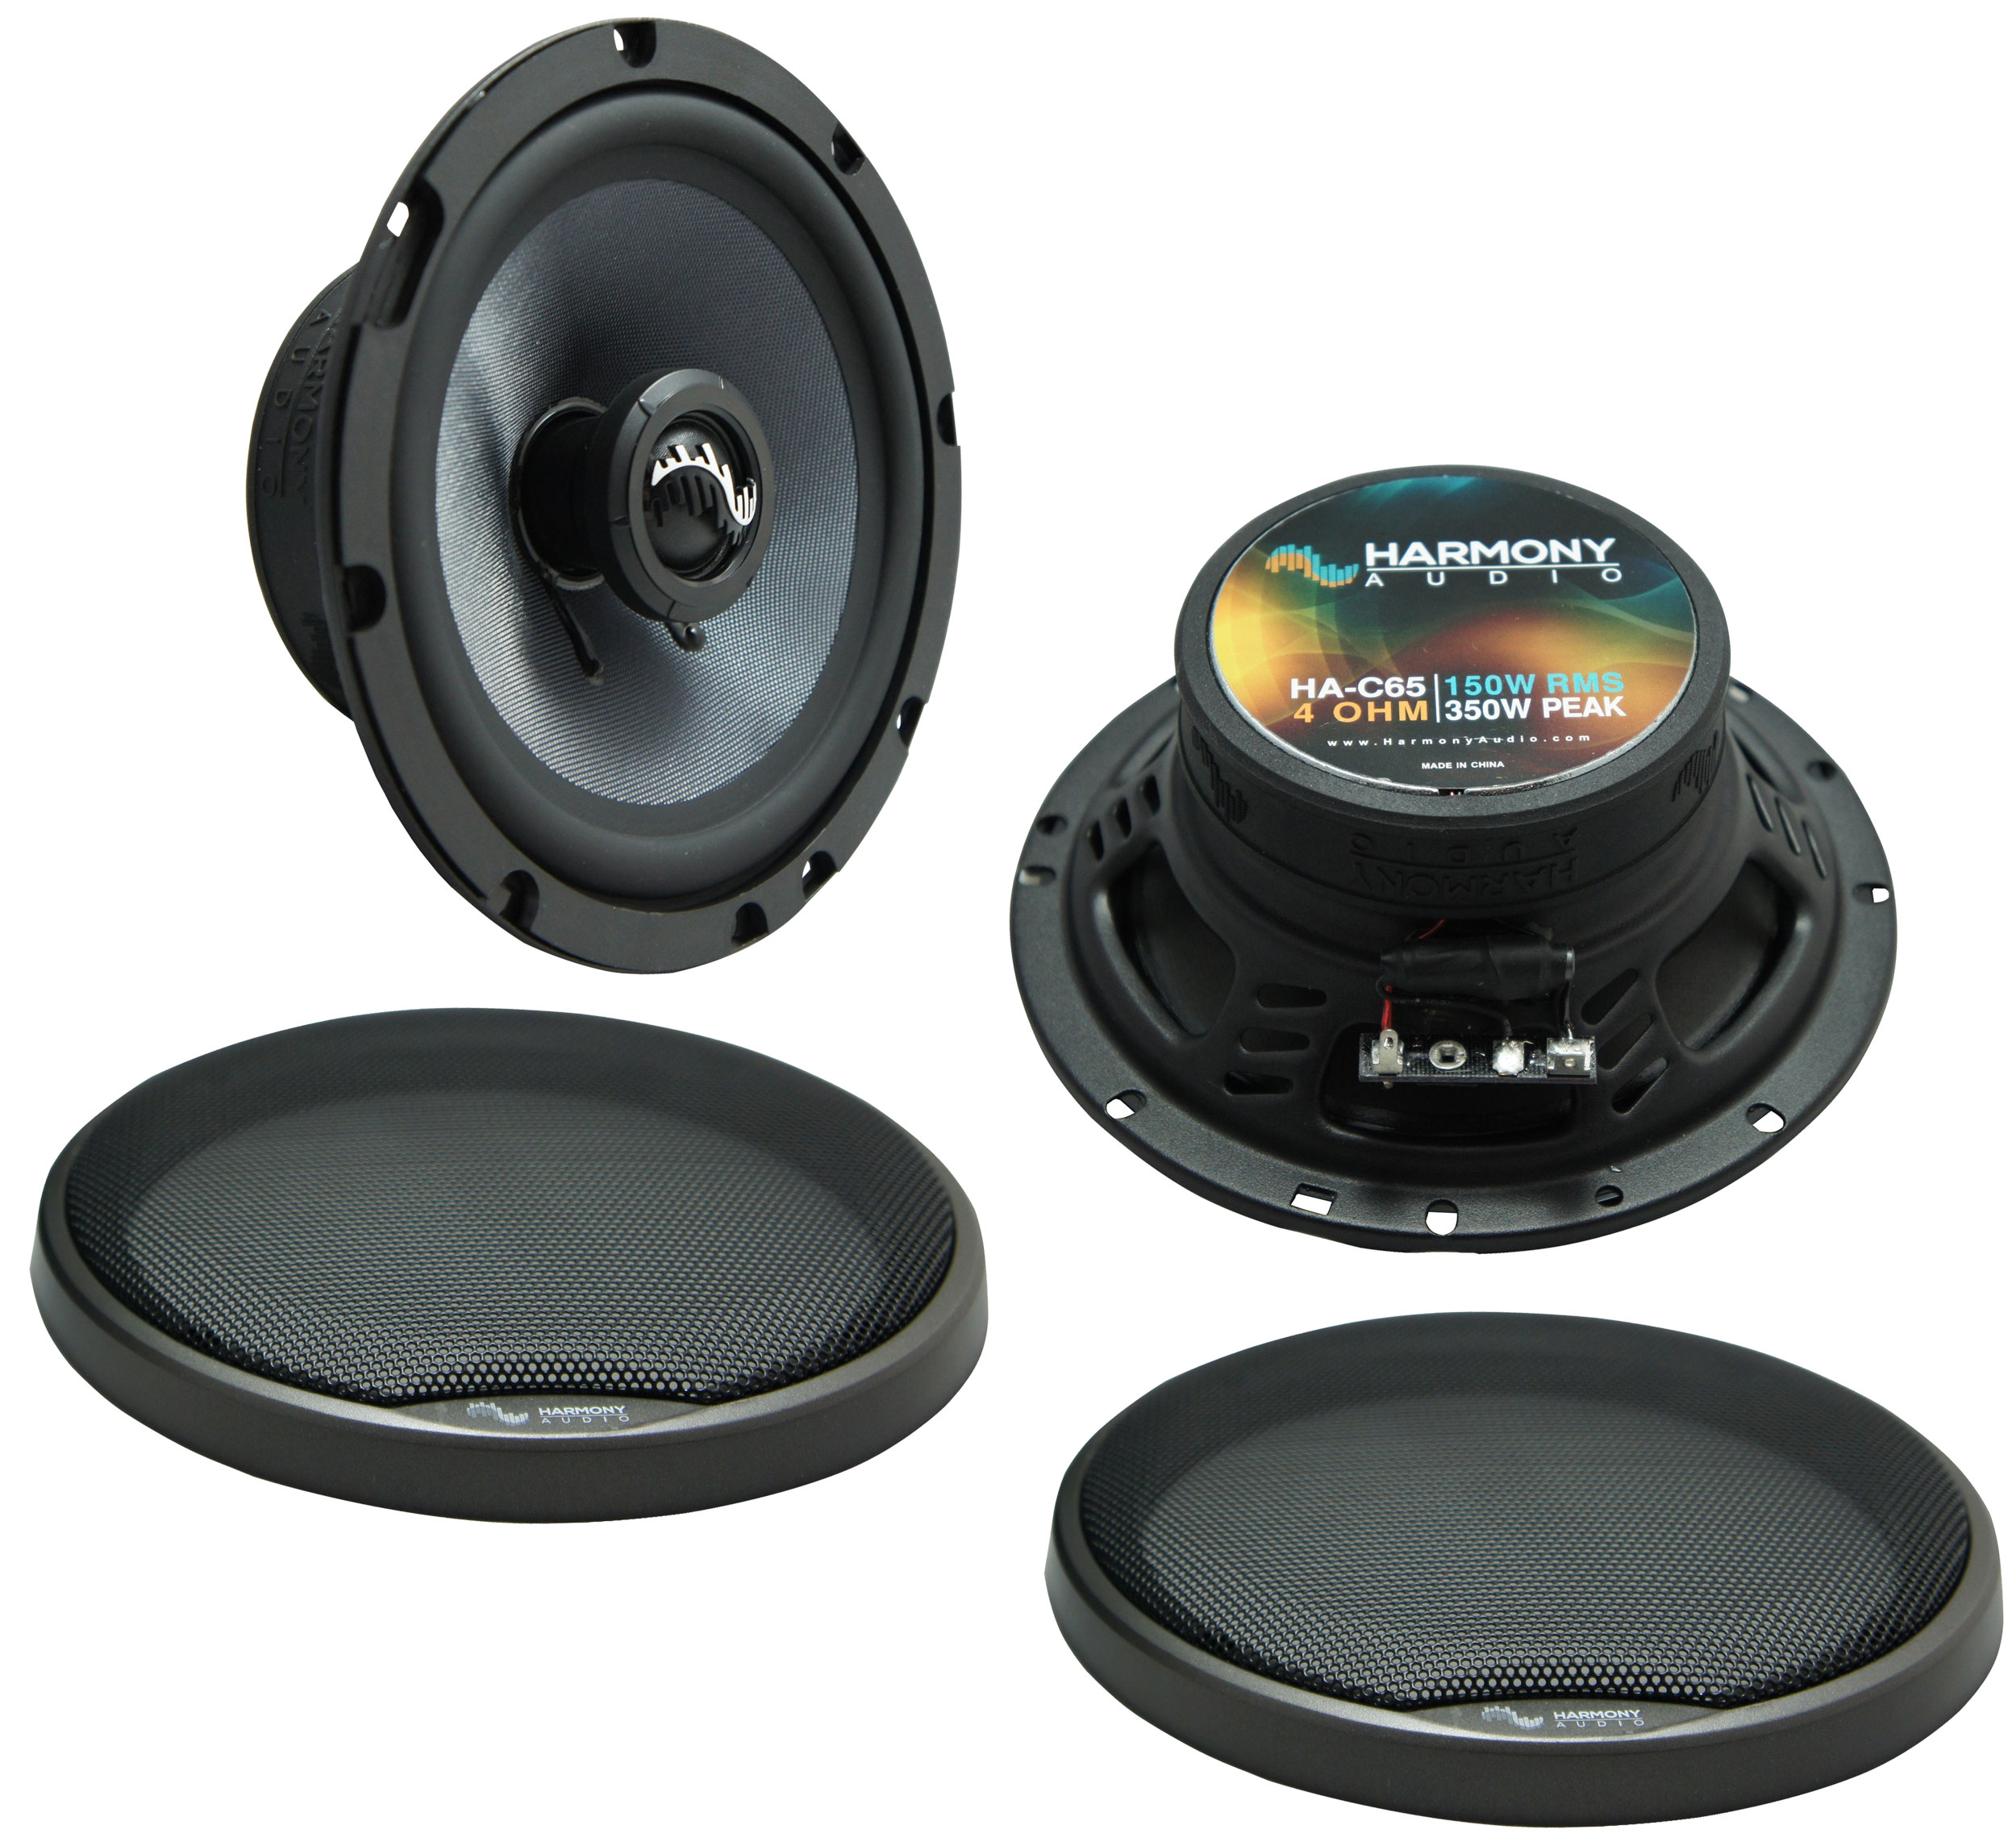 """Harmony Audio Bundle Compatible With 2006-2011 Honda Civic HA-C65 Car Stereo 6.5"""" Replacement with HA-827805 6.5? Speakers Adapter Kit, and HA-727800 Speaker Replacement Harness"""